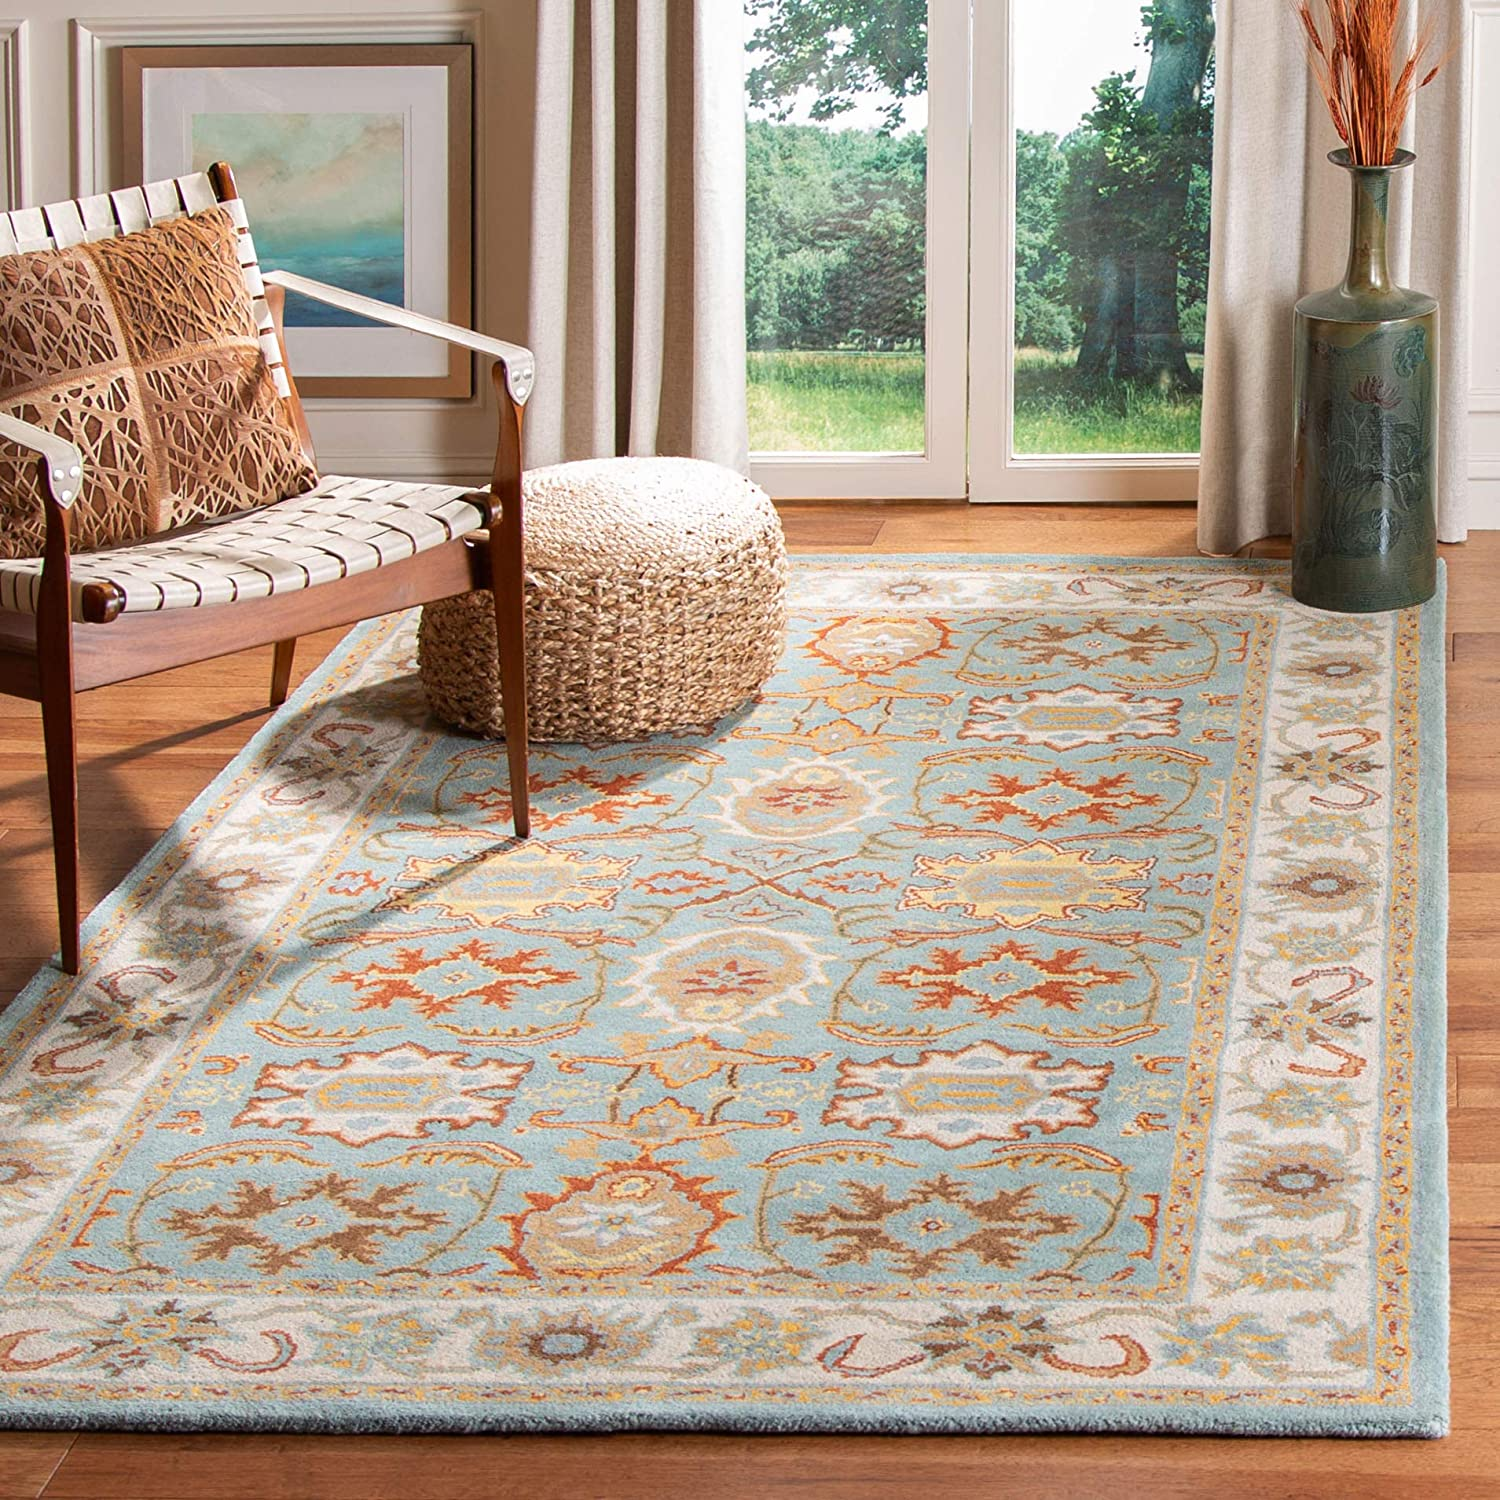 Amazon Com Safavieh Heritage Collection Hg734a Handmade Traditional Oriental Premium Wool Area Rug 7 6 X 9 6 Light Blue Ivory Furniture Decor